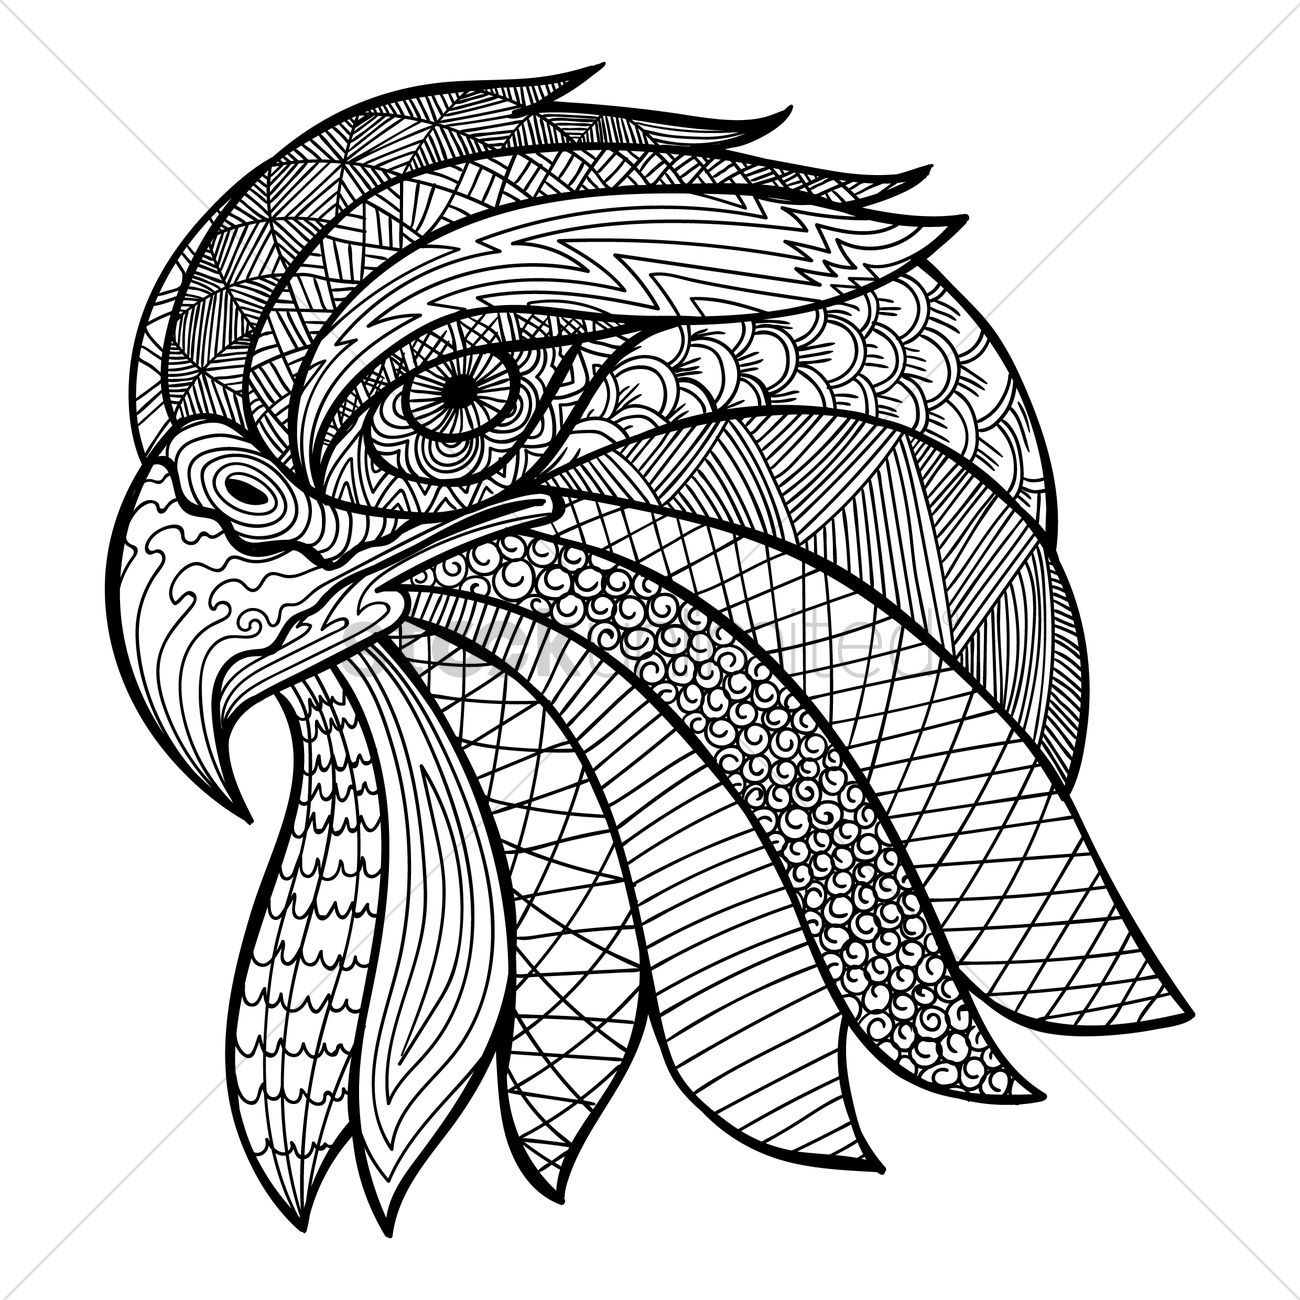 Detailed Line Drawings Of Animals : Intricate eagle design vector image stockunlimited